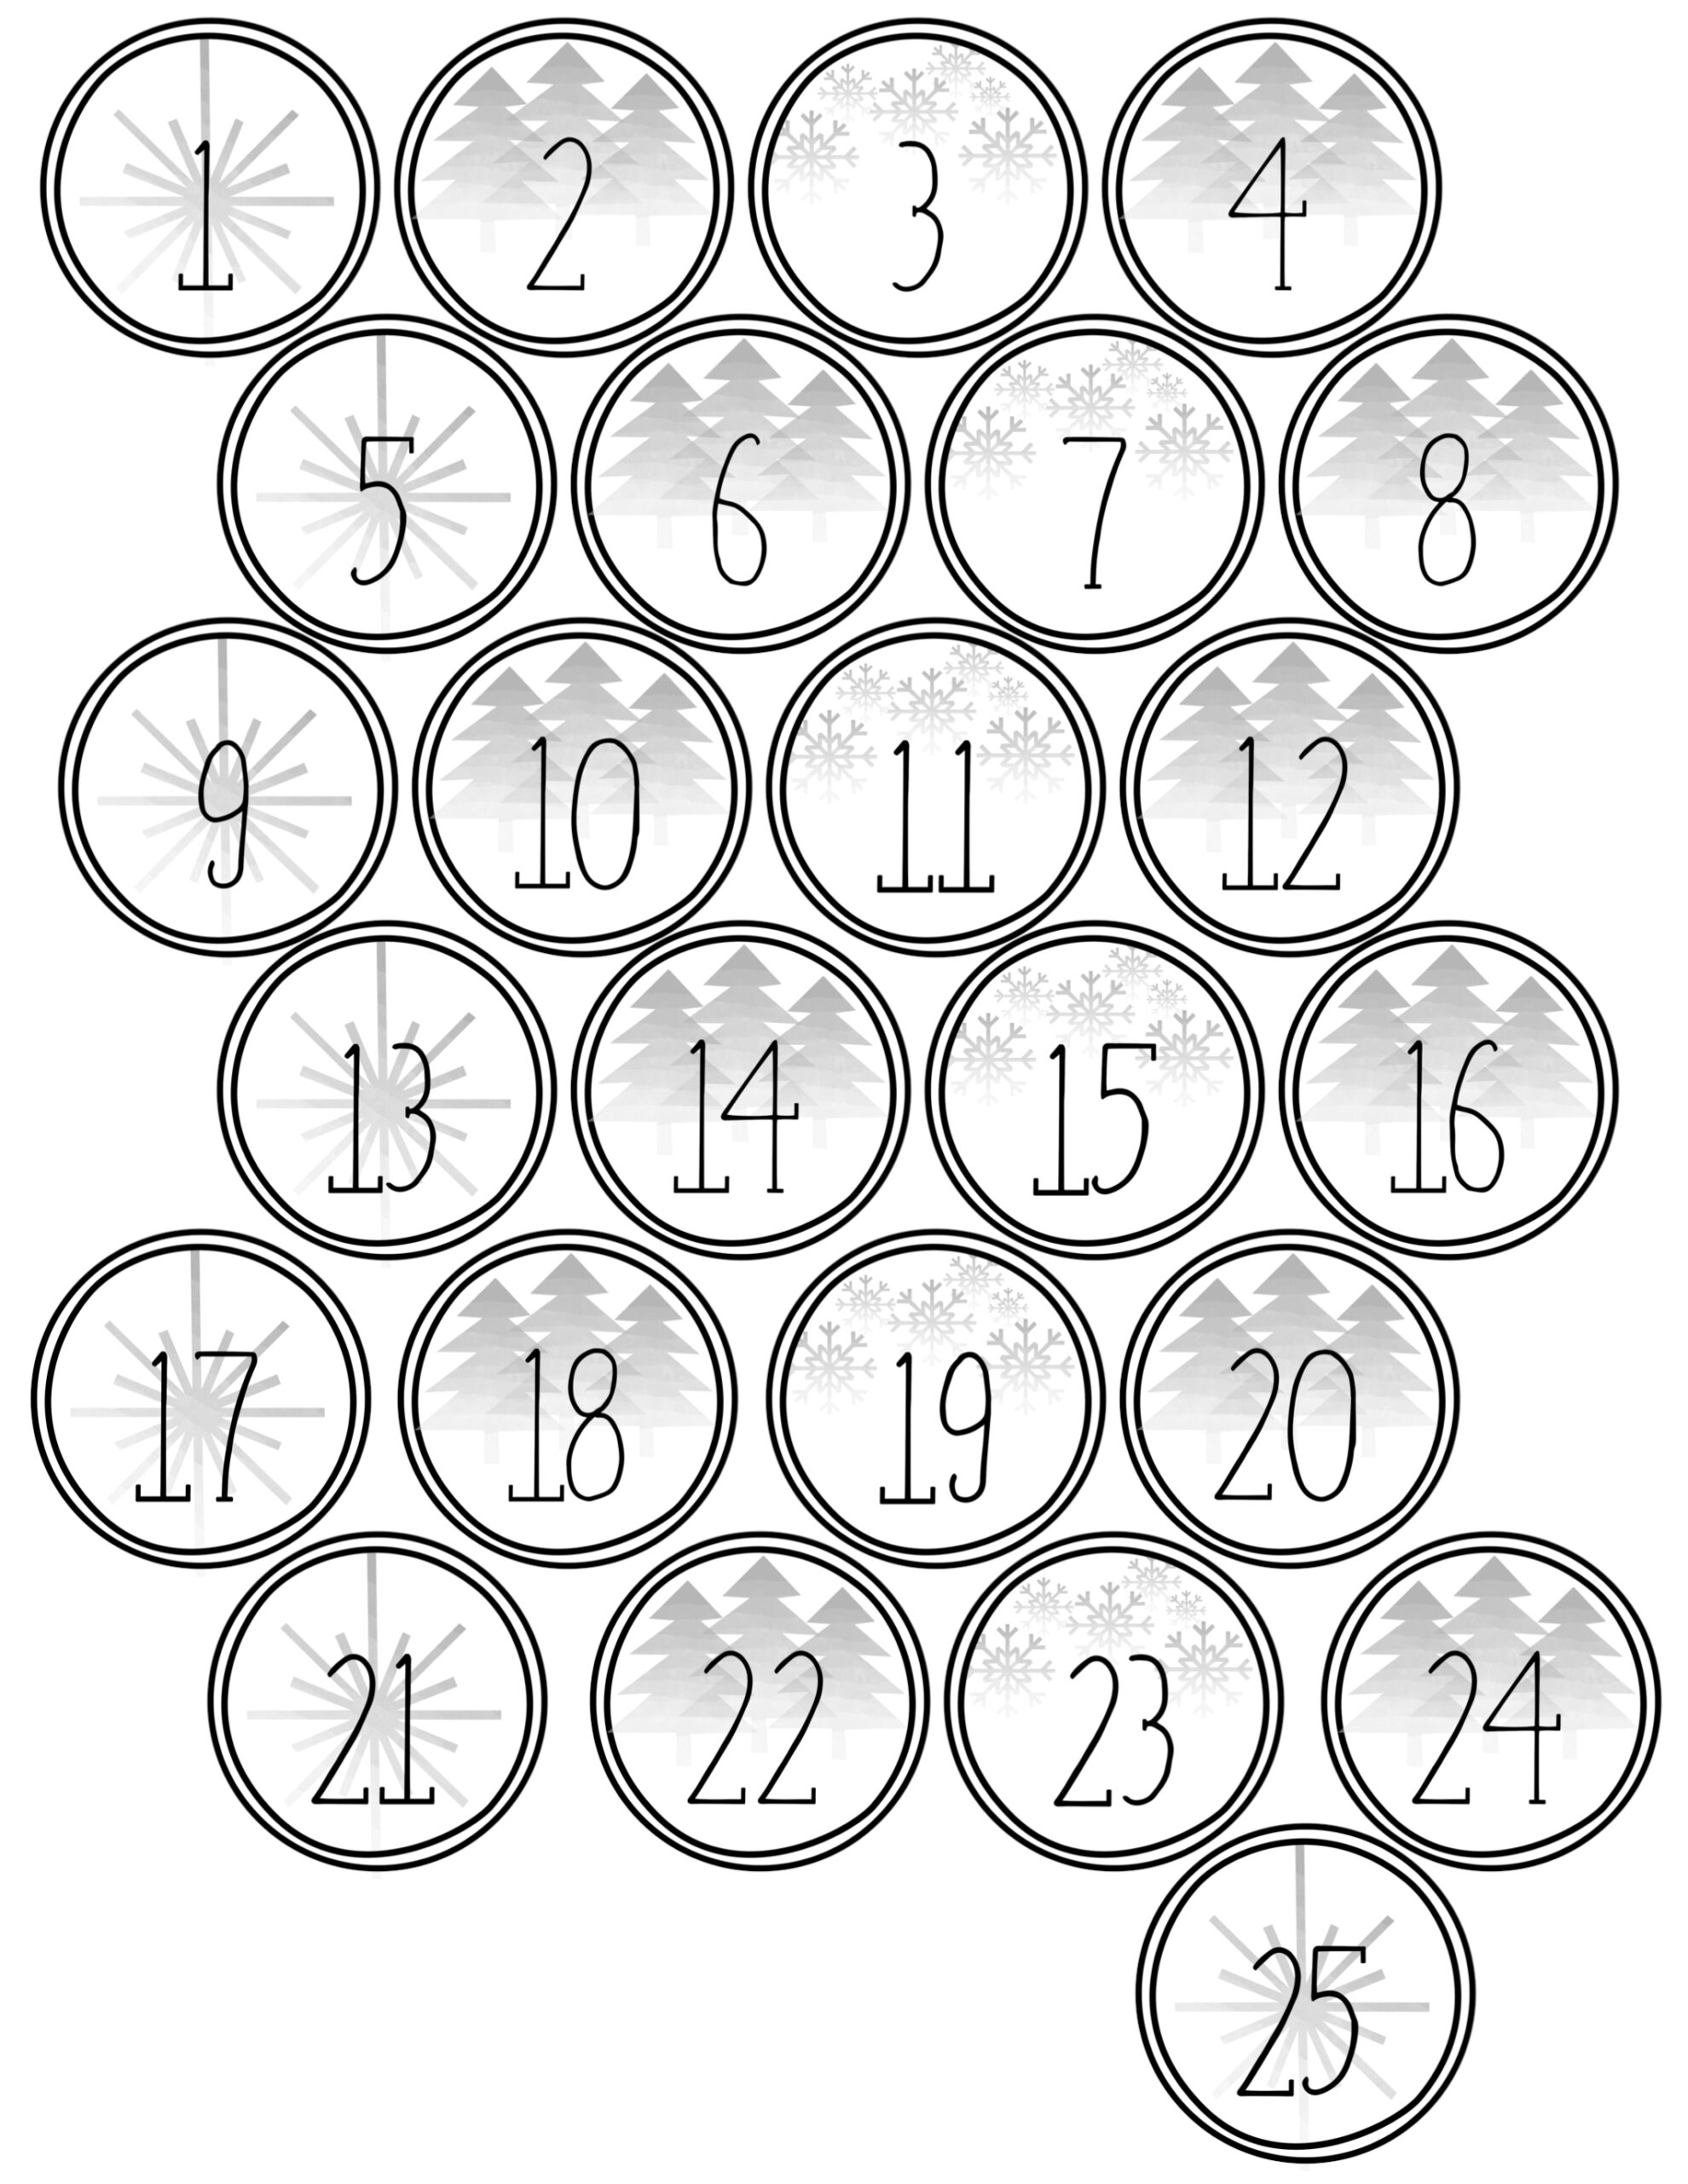 photo about Advent Calendar Numbers Printable named Xmas Arrival Calendar Printable Figures - Paper Path Structure